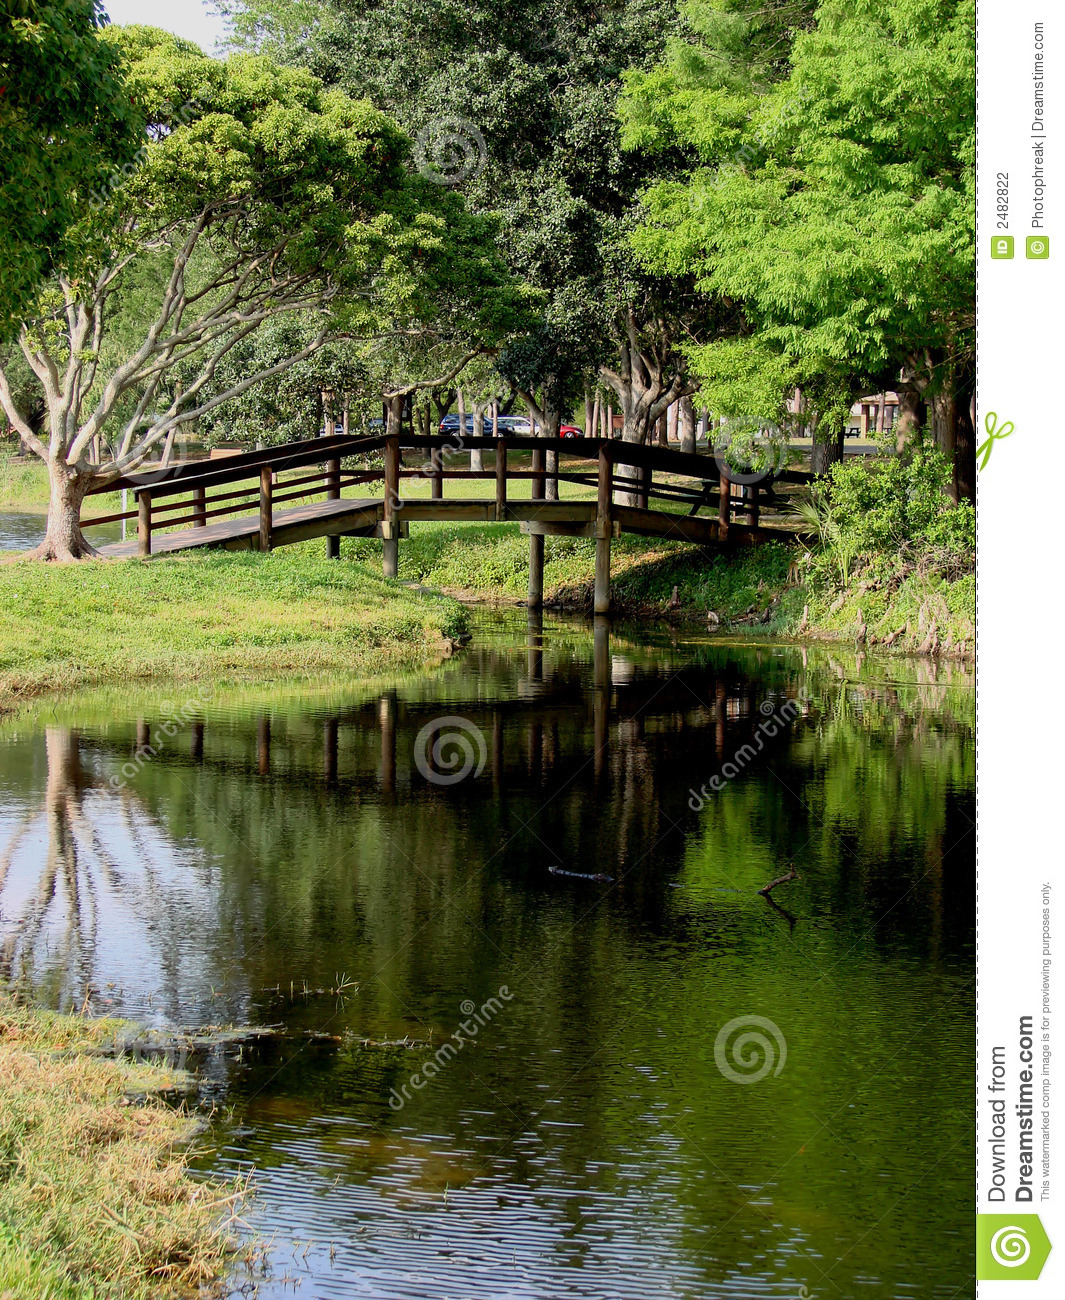 Wooden Bridge Crossing Over Pond Or Stream Trees And Grassy Shore